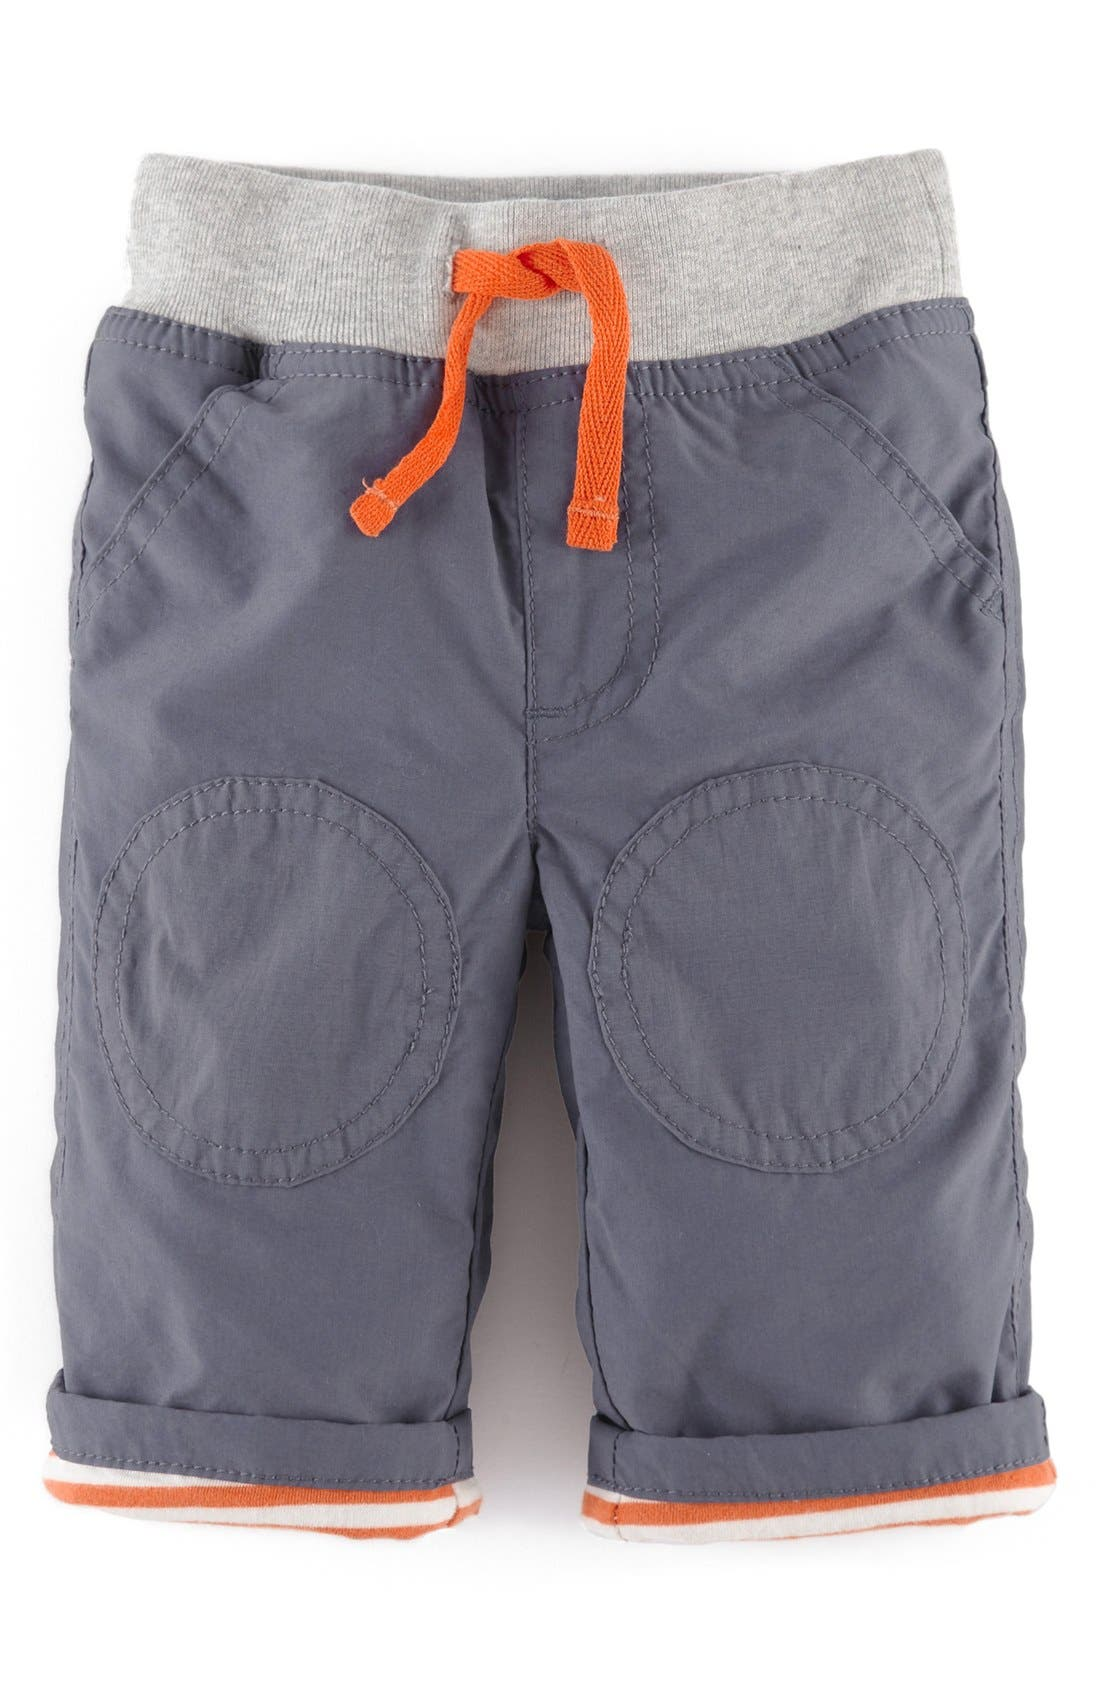 Main Image - Mini Boden Cozy Knee Patch Trousers (Baby)